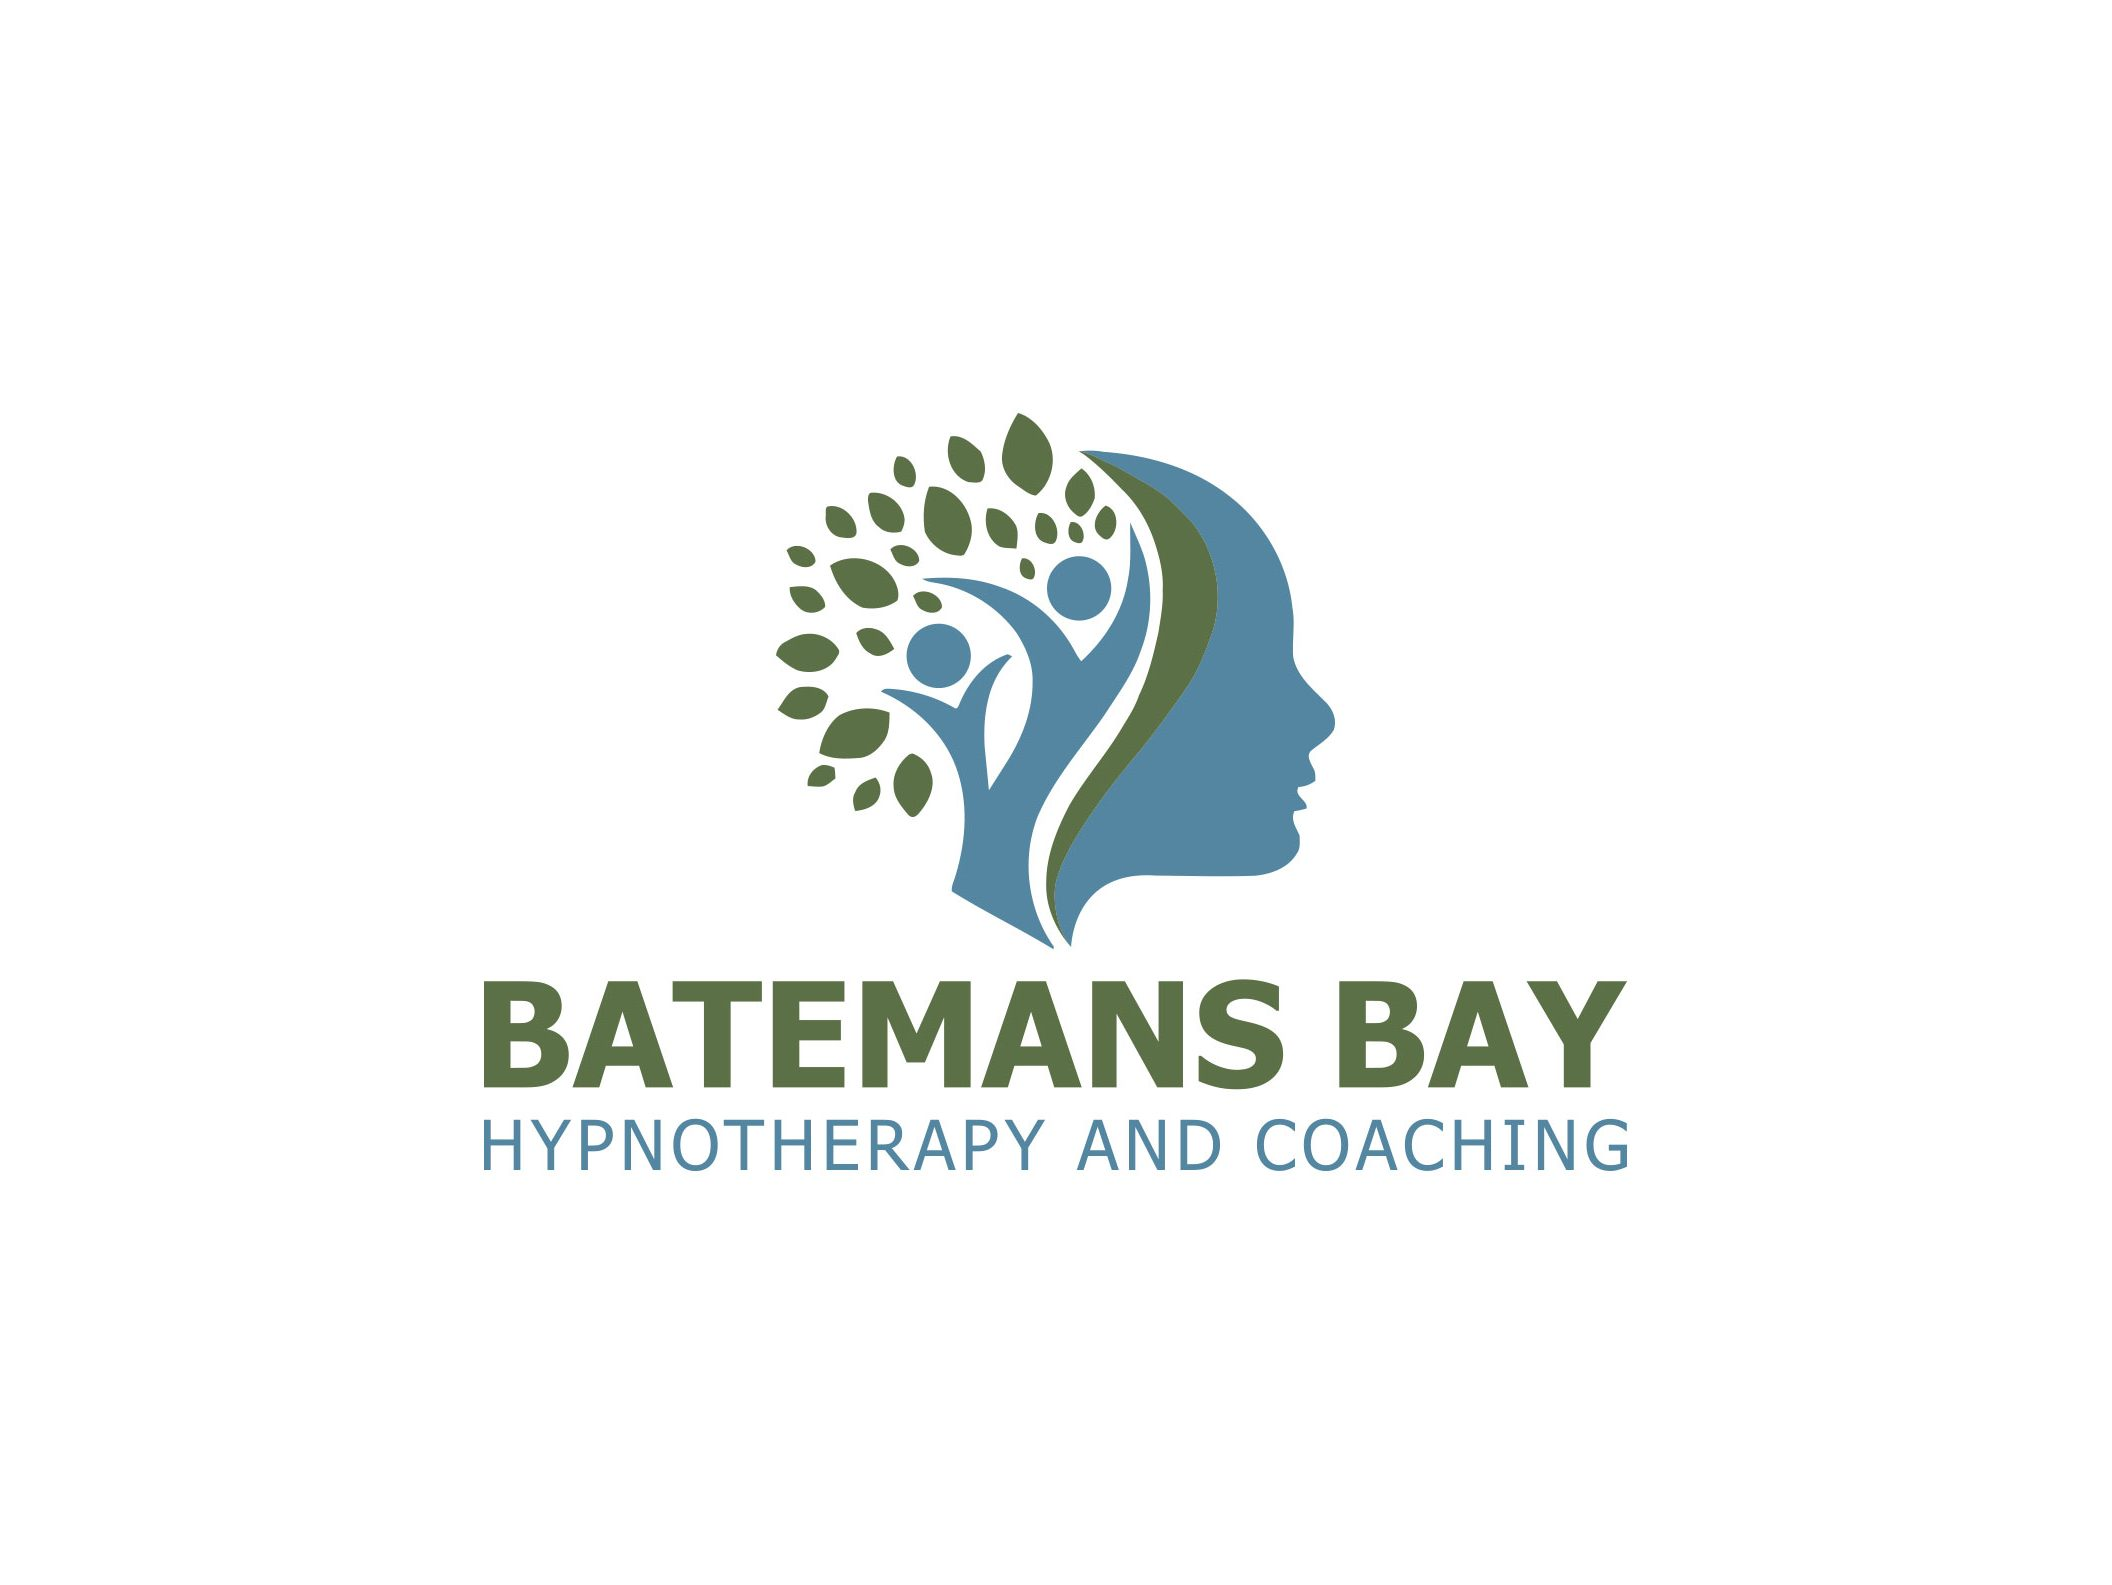 Batemans Bay Hypnotherapy and Coaching